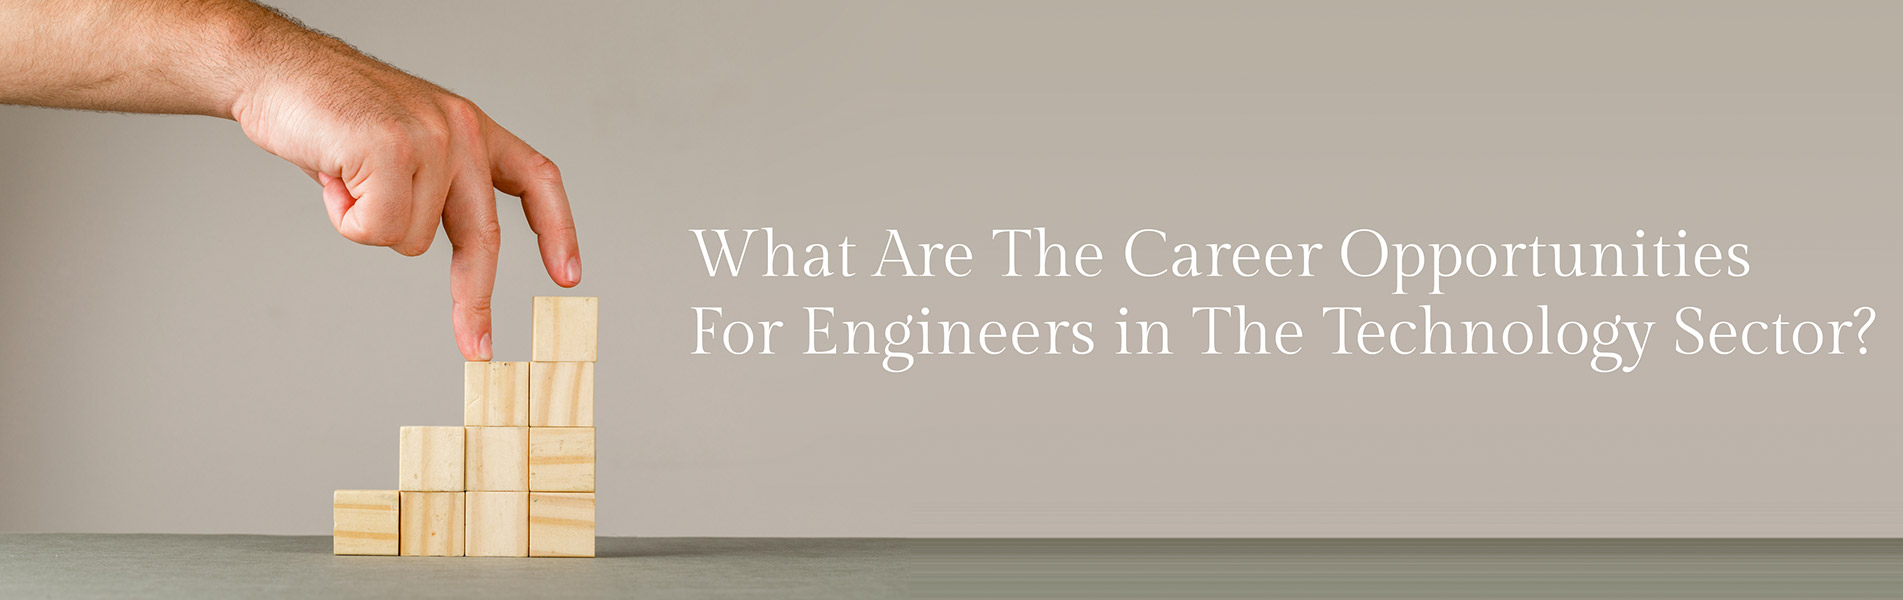 career opportunities, engineers, technology sector